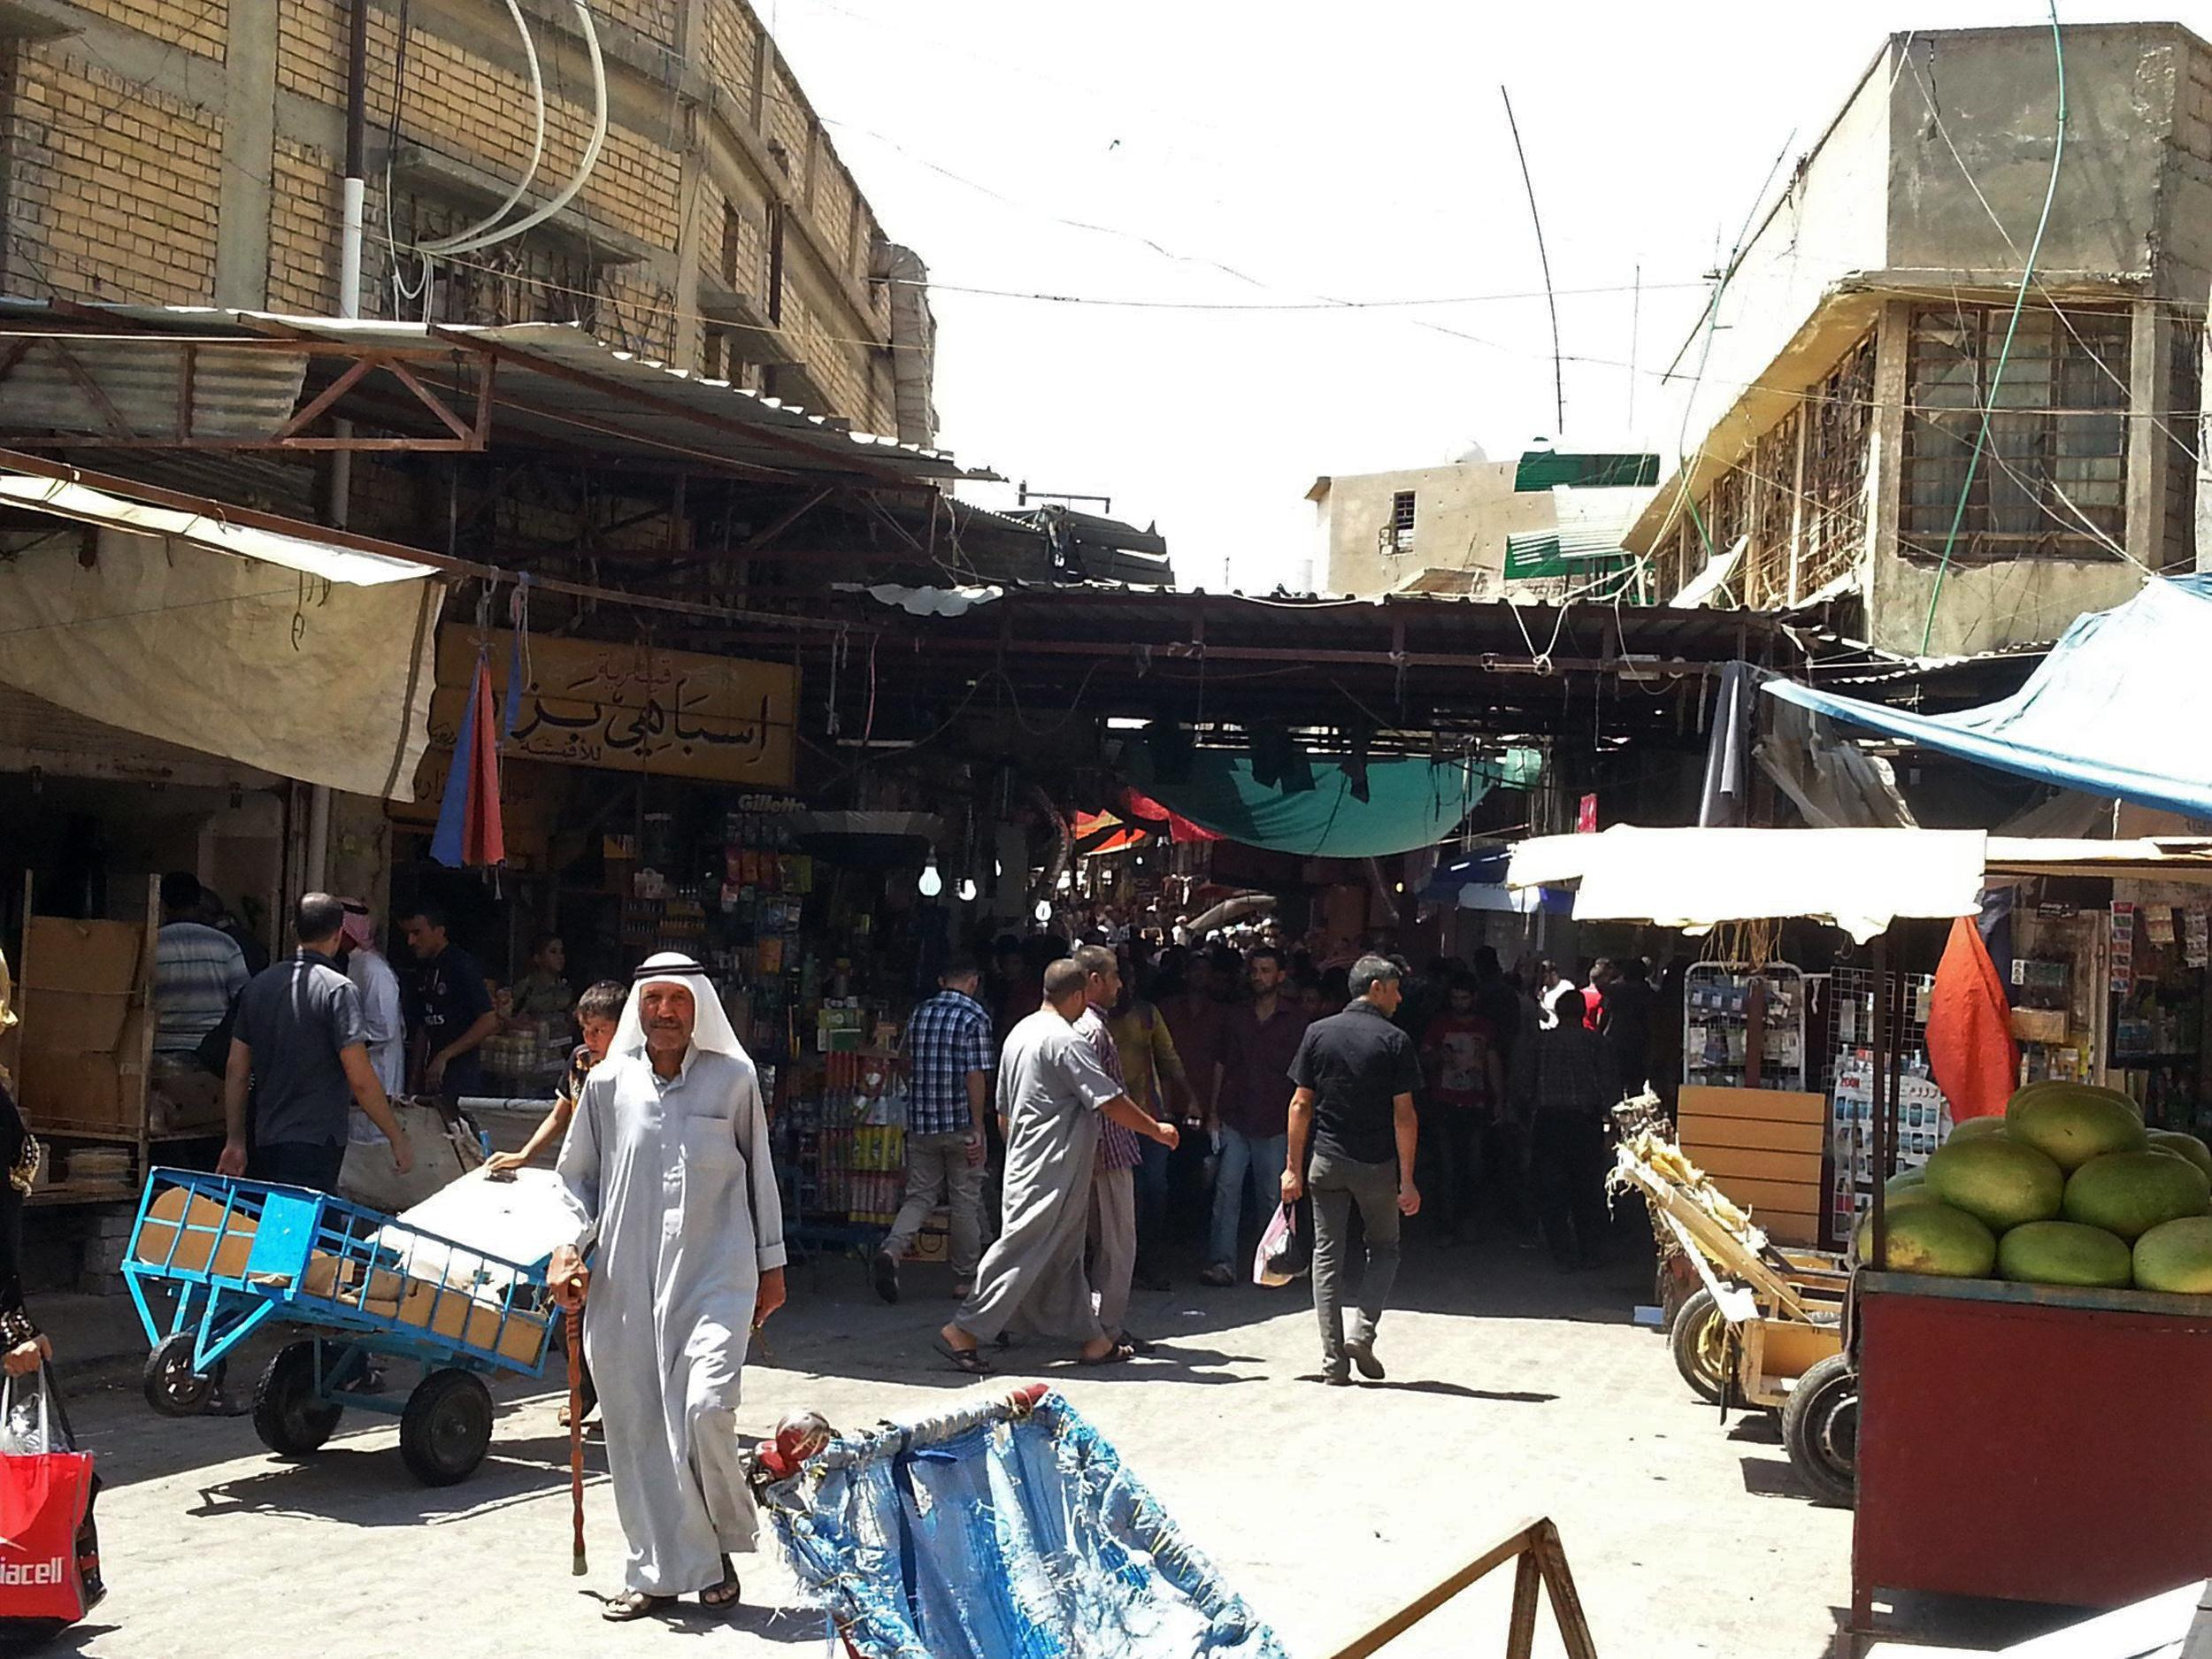 Image: Residents shop ahead of the Muslim fasting month of Ramadan at a market in the city of Mosul